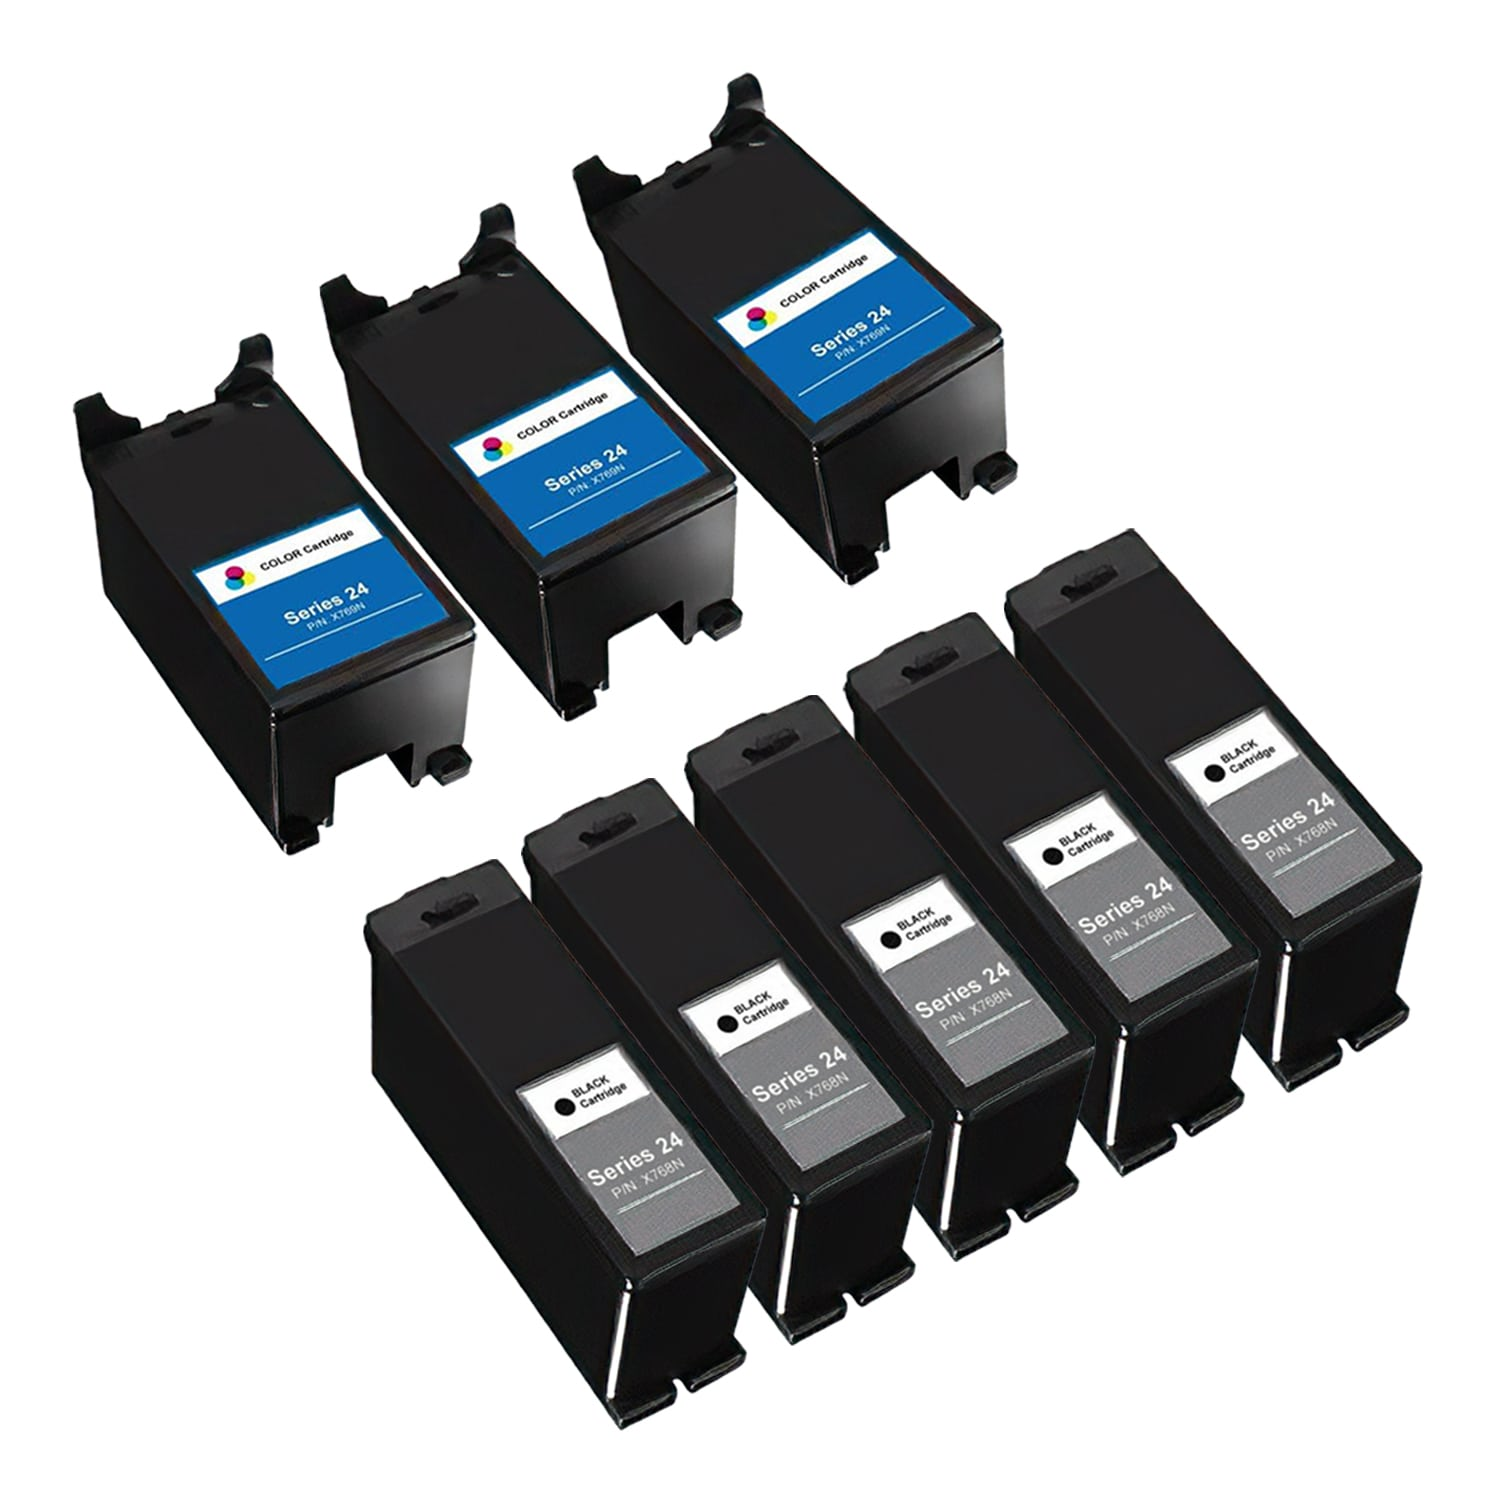 Compatible Dell Series 24 Inkjet High Capacity Pack - 8 Cartridges